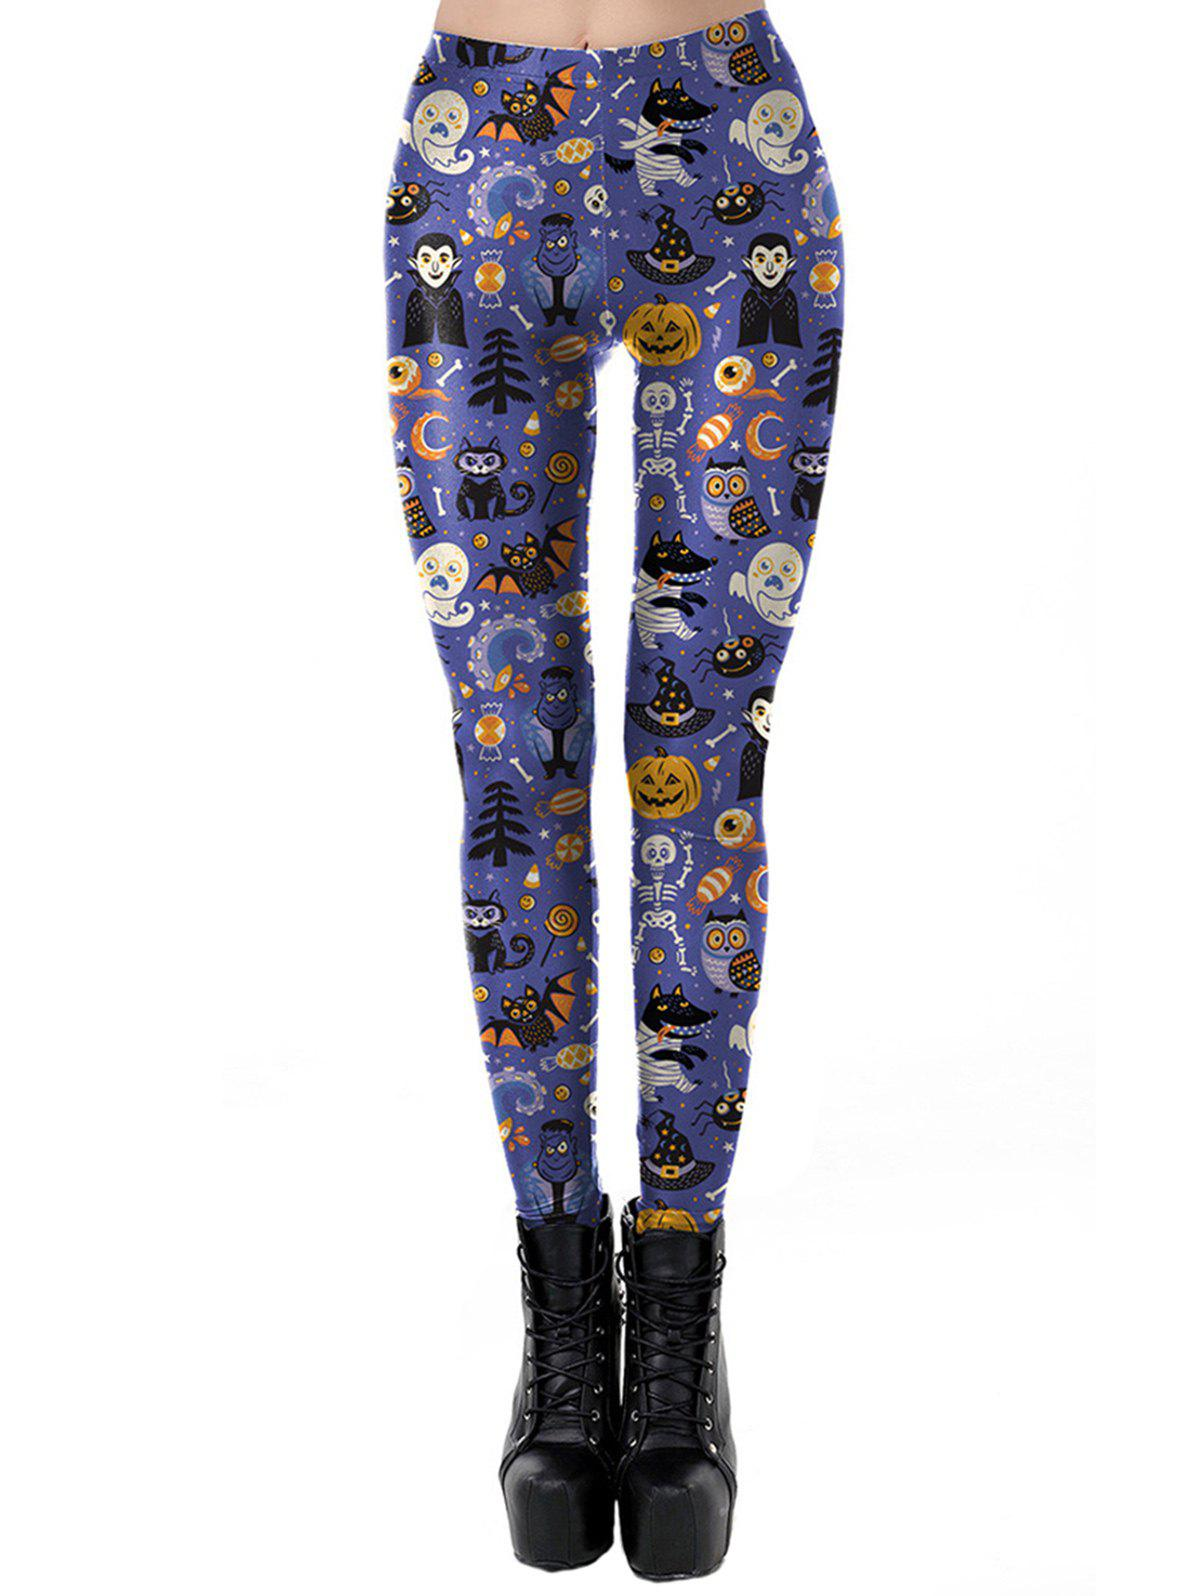 5ace182f5 Women Classic Retro Printed Casual Pattern Ankle Length Elastic Tights  Leggings - Purple - S